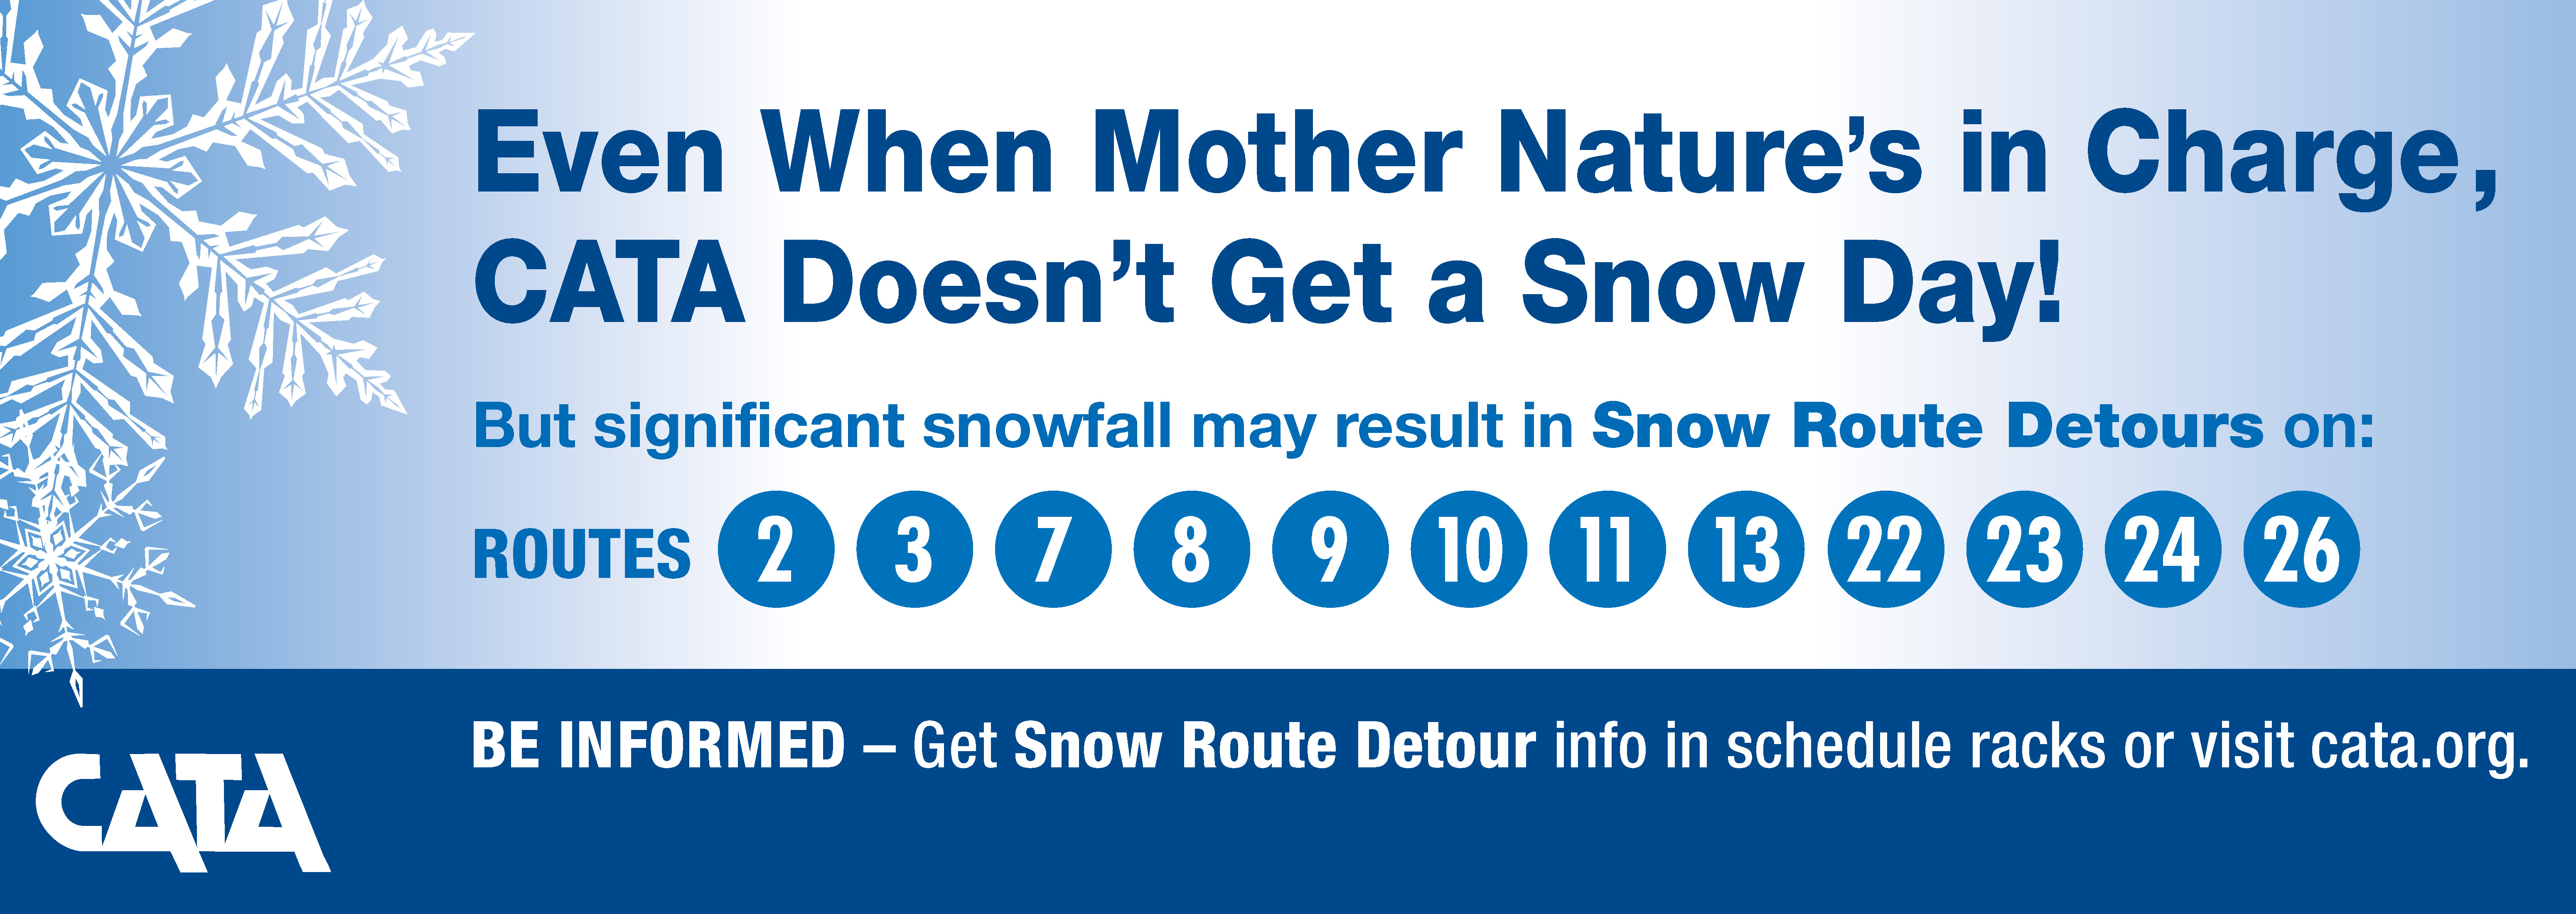 Routes 2, 3, 7, 8, 9, 10, 11, 13, 20, 22, 23, 24 and 26 use snow route detouring